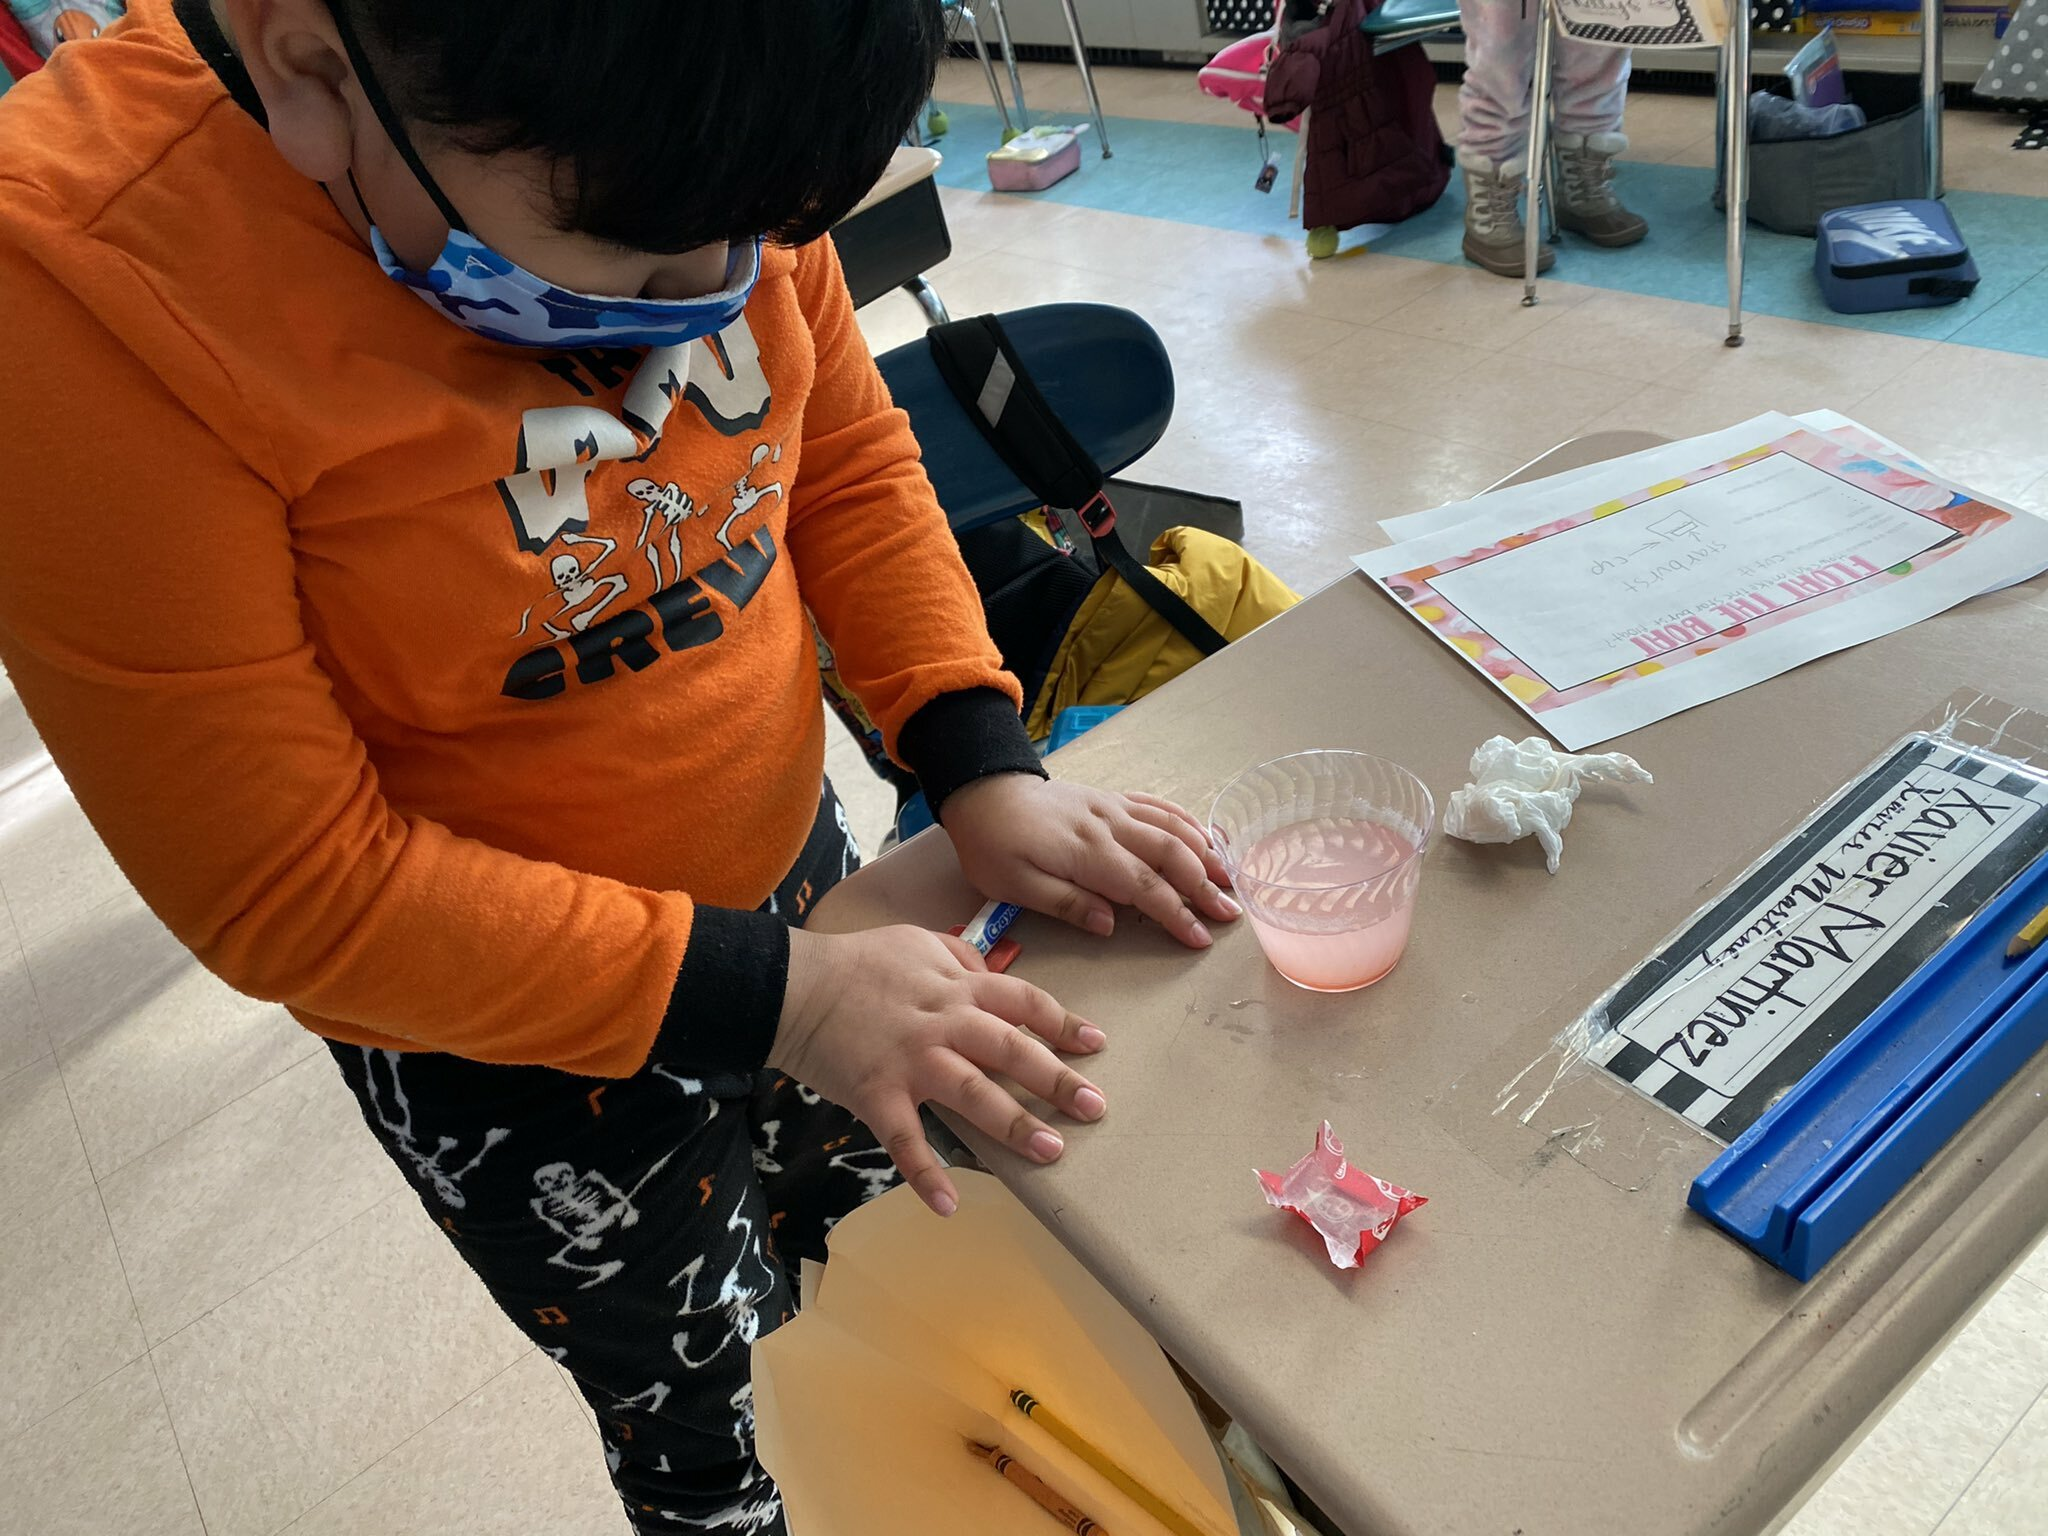 As part of a science lesson, the third graders in Claire Urizzo's class at Hampton Bays Elementary School tested the buoyancy of Starburst candies. They predicted whether the candy would sink or float and then tested their hypotheses. After the candy plunged to the bottom of their cups, they made manipulations to make it float.